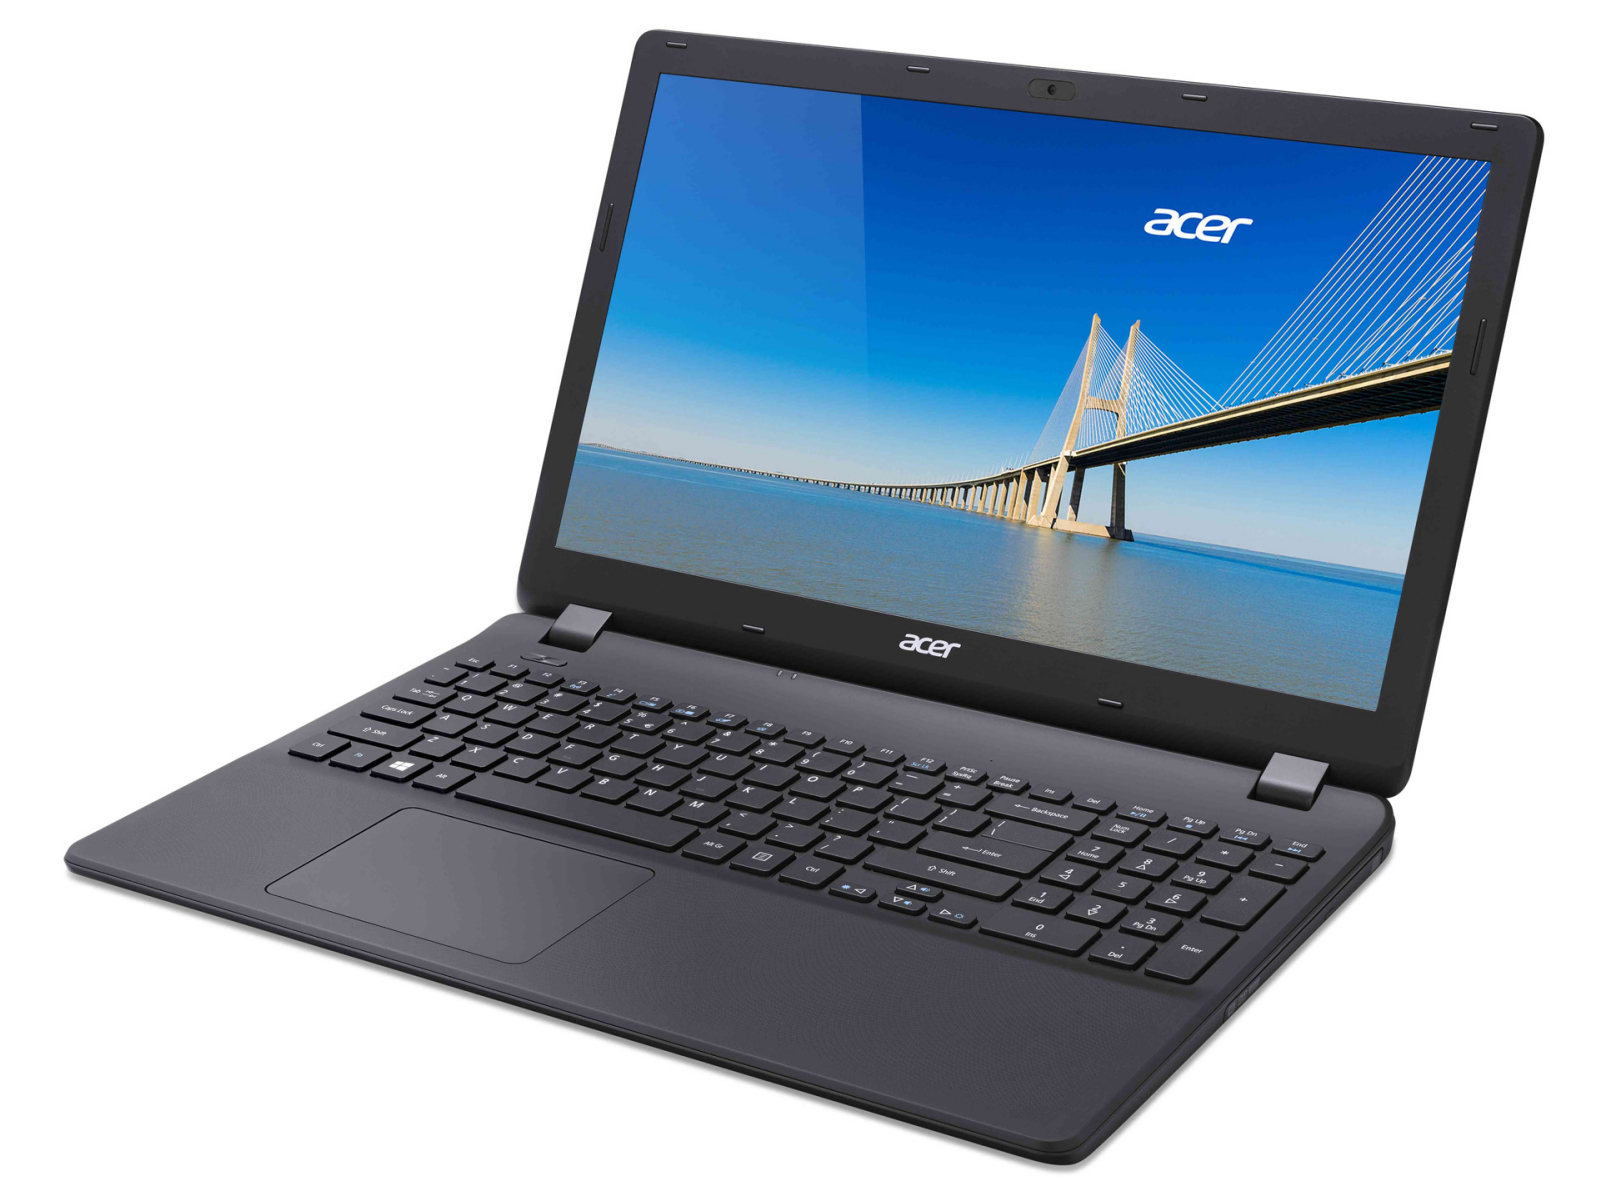 how to open cd drive on acer touch laptop